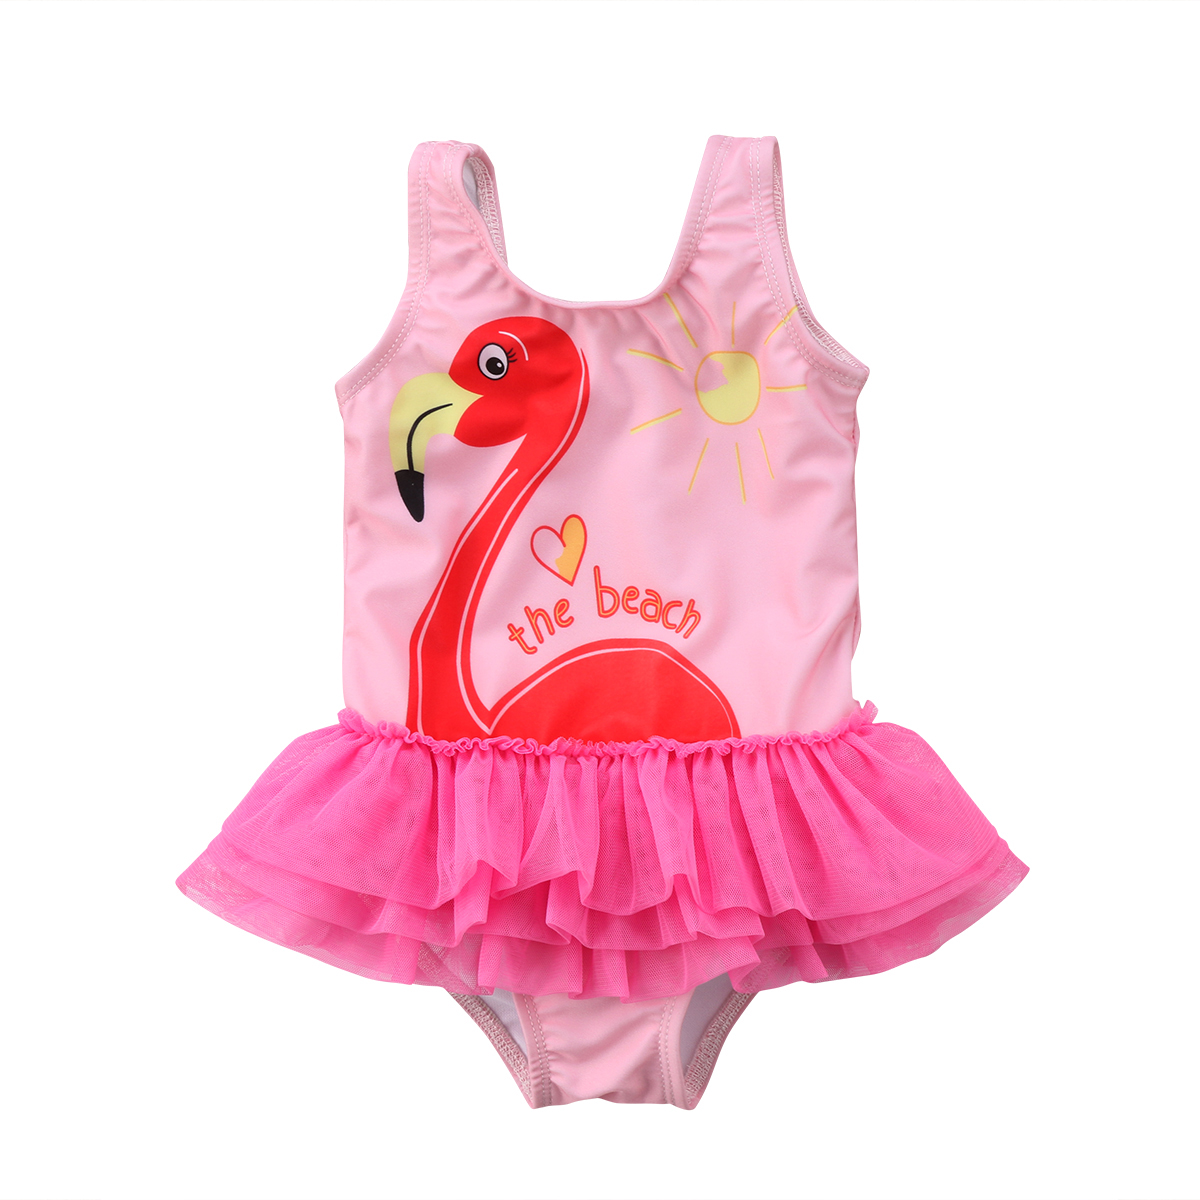 2fc07aebee4f Cute Kid Baby Girl Swan Bikini Swimsuit Swimwear Flamingo Swimming Suit  Beach Clothes-in Clothing Sets from Mother   Kids on Aliexpress.com